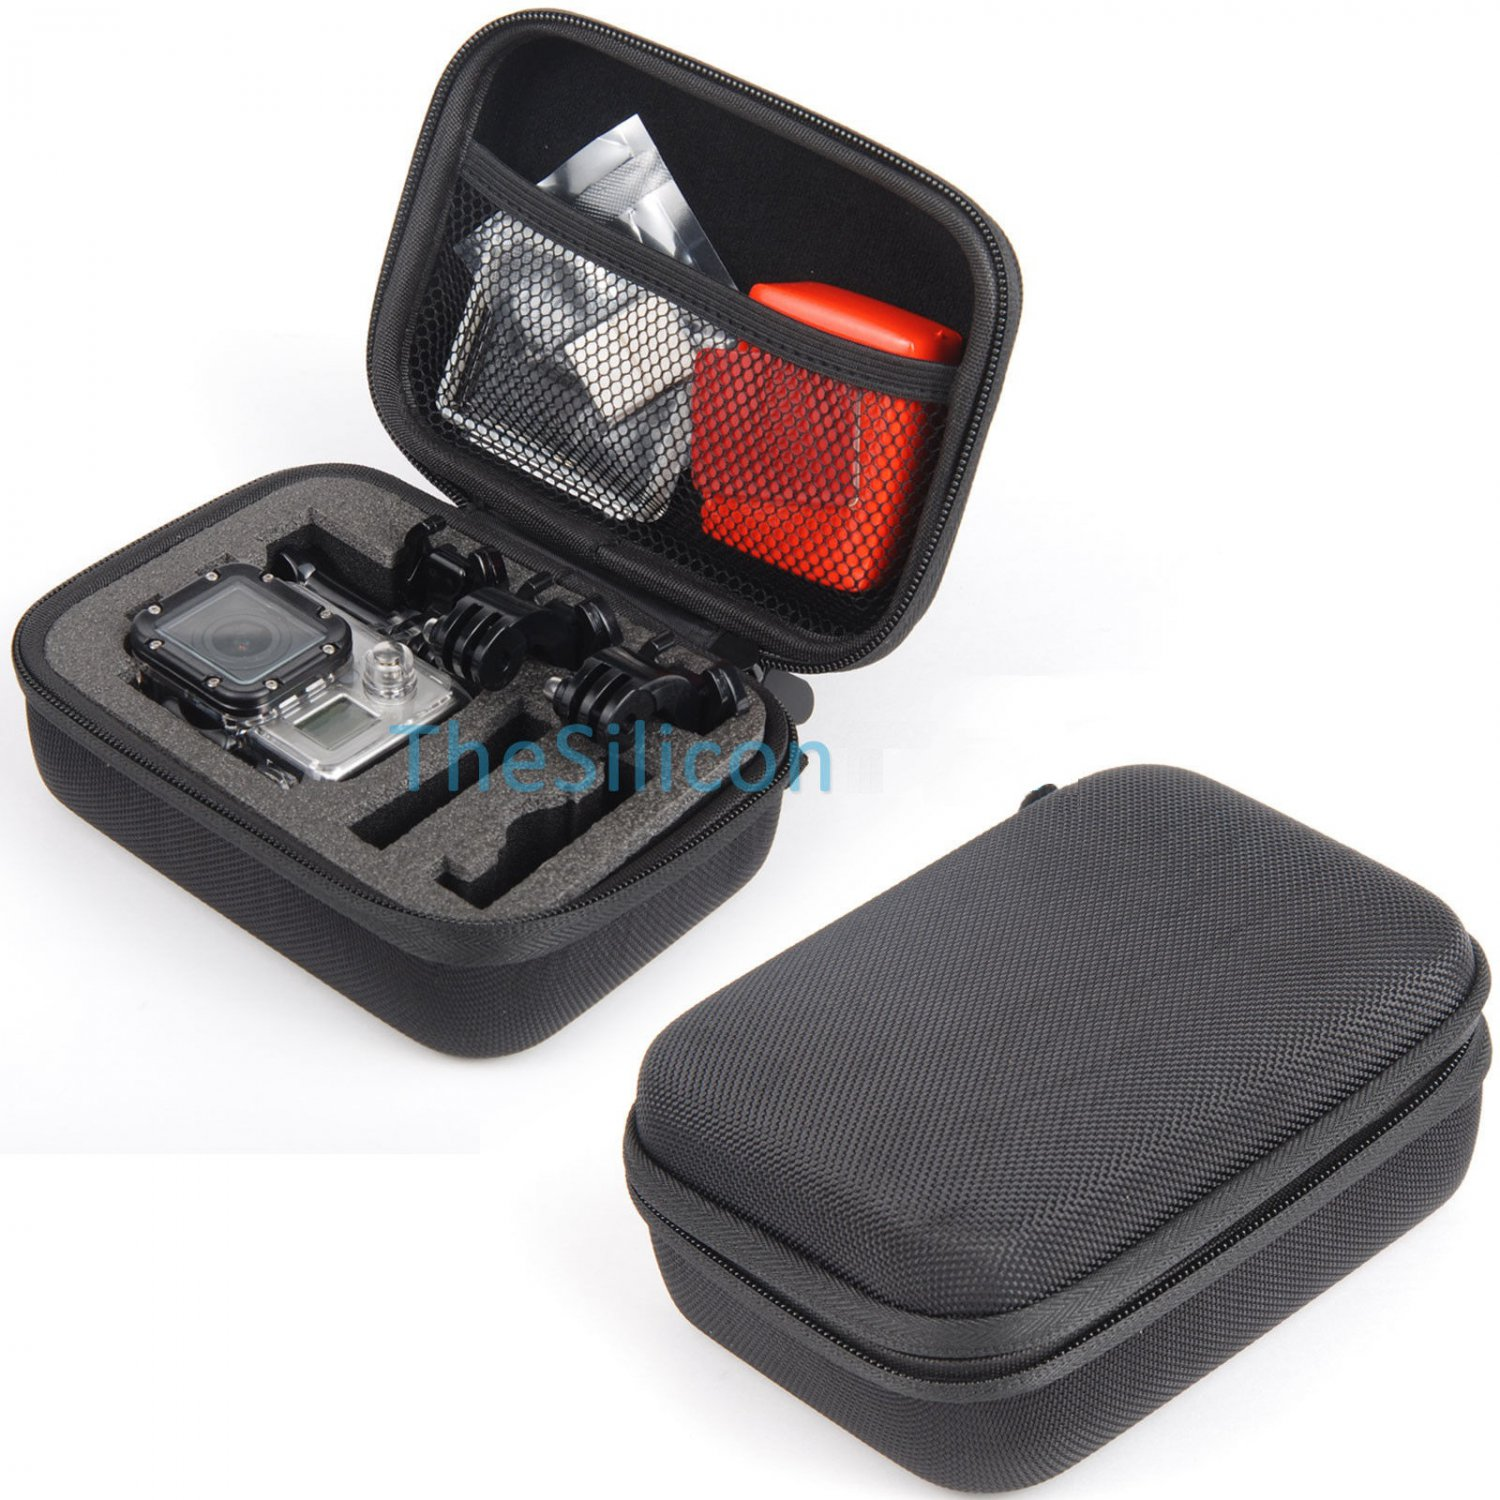 Waterproof Shockproof Protective Case Carry Bag For GoPro Hero4 3+ 3 2 Accessory